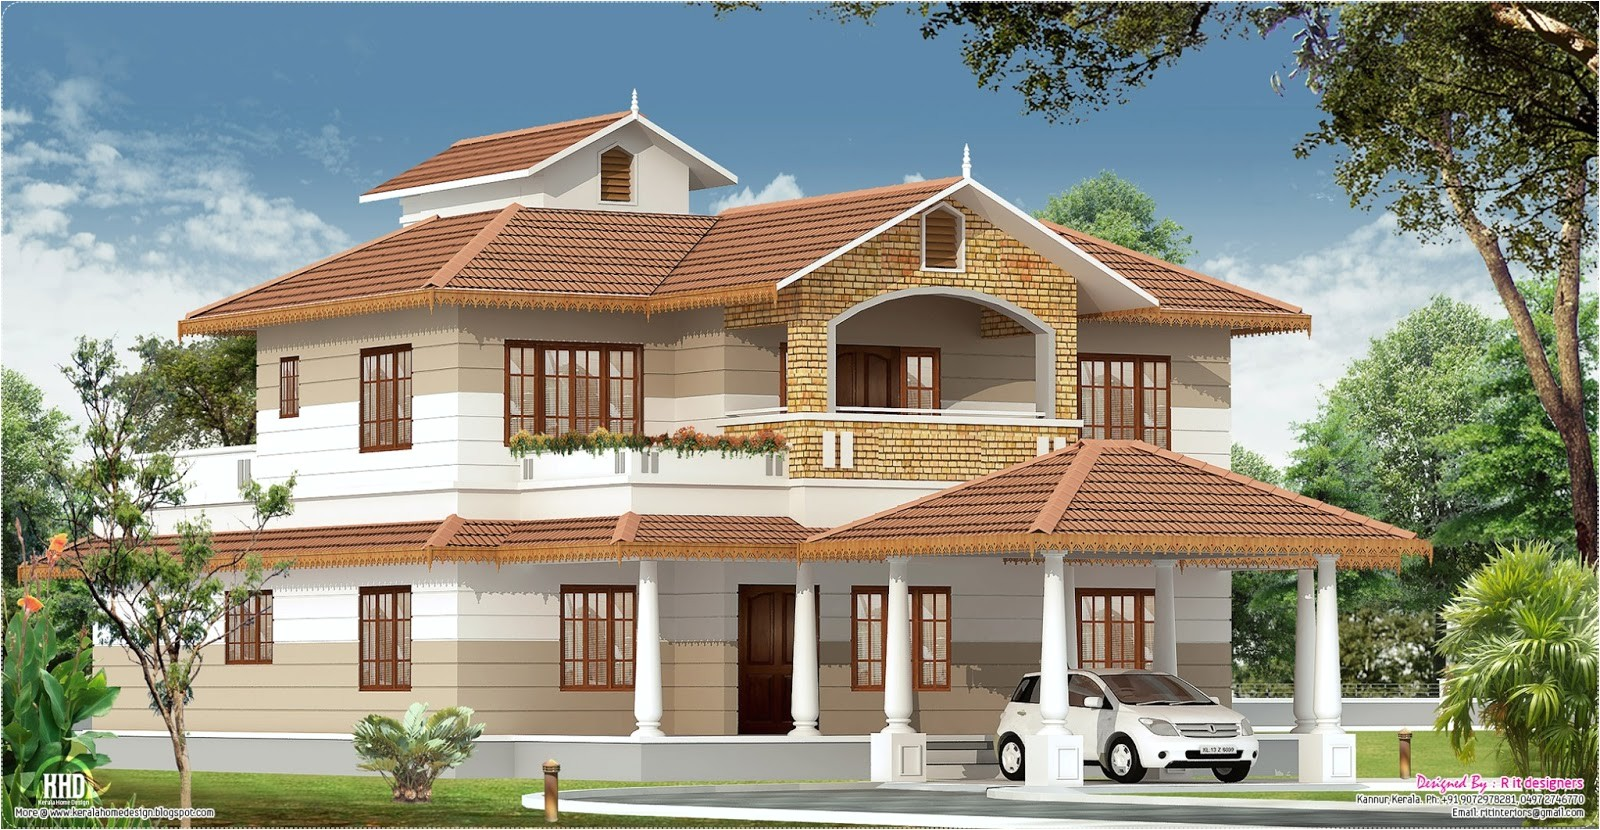 Home Plans Design Kerala 2700 Sq Feet Kerala Home with Interior Designs Kerala